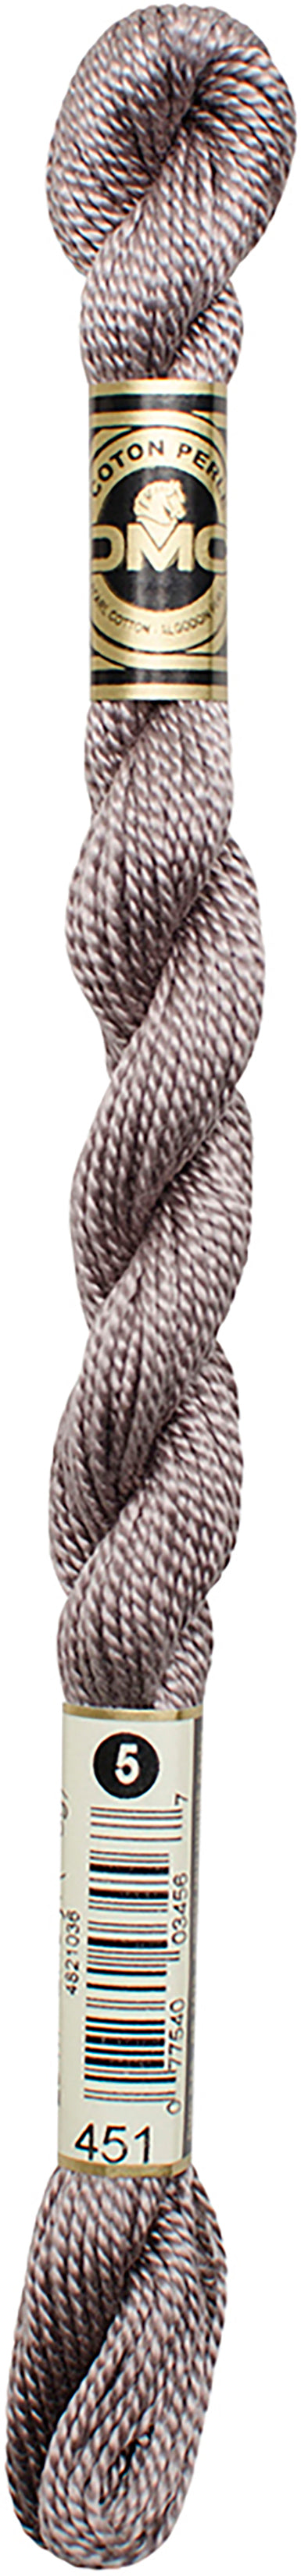 DMC Pearl Cotton Skein Size 5 27.3yd-Dark Shell Gray - Pens N More